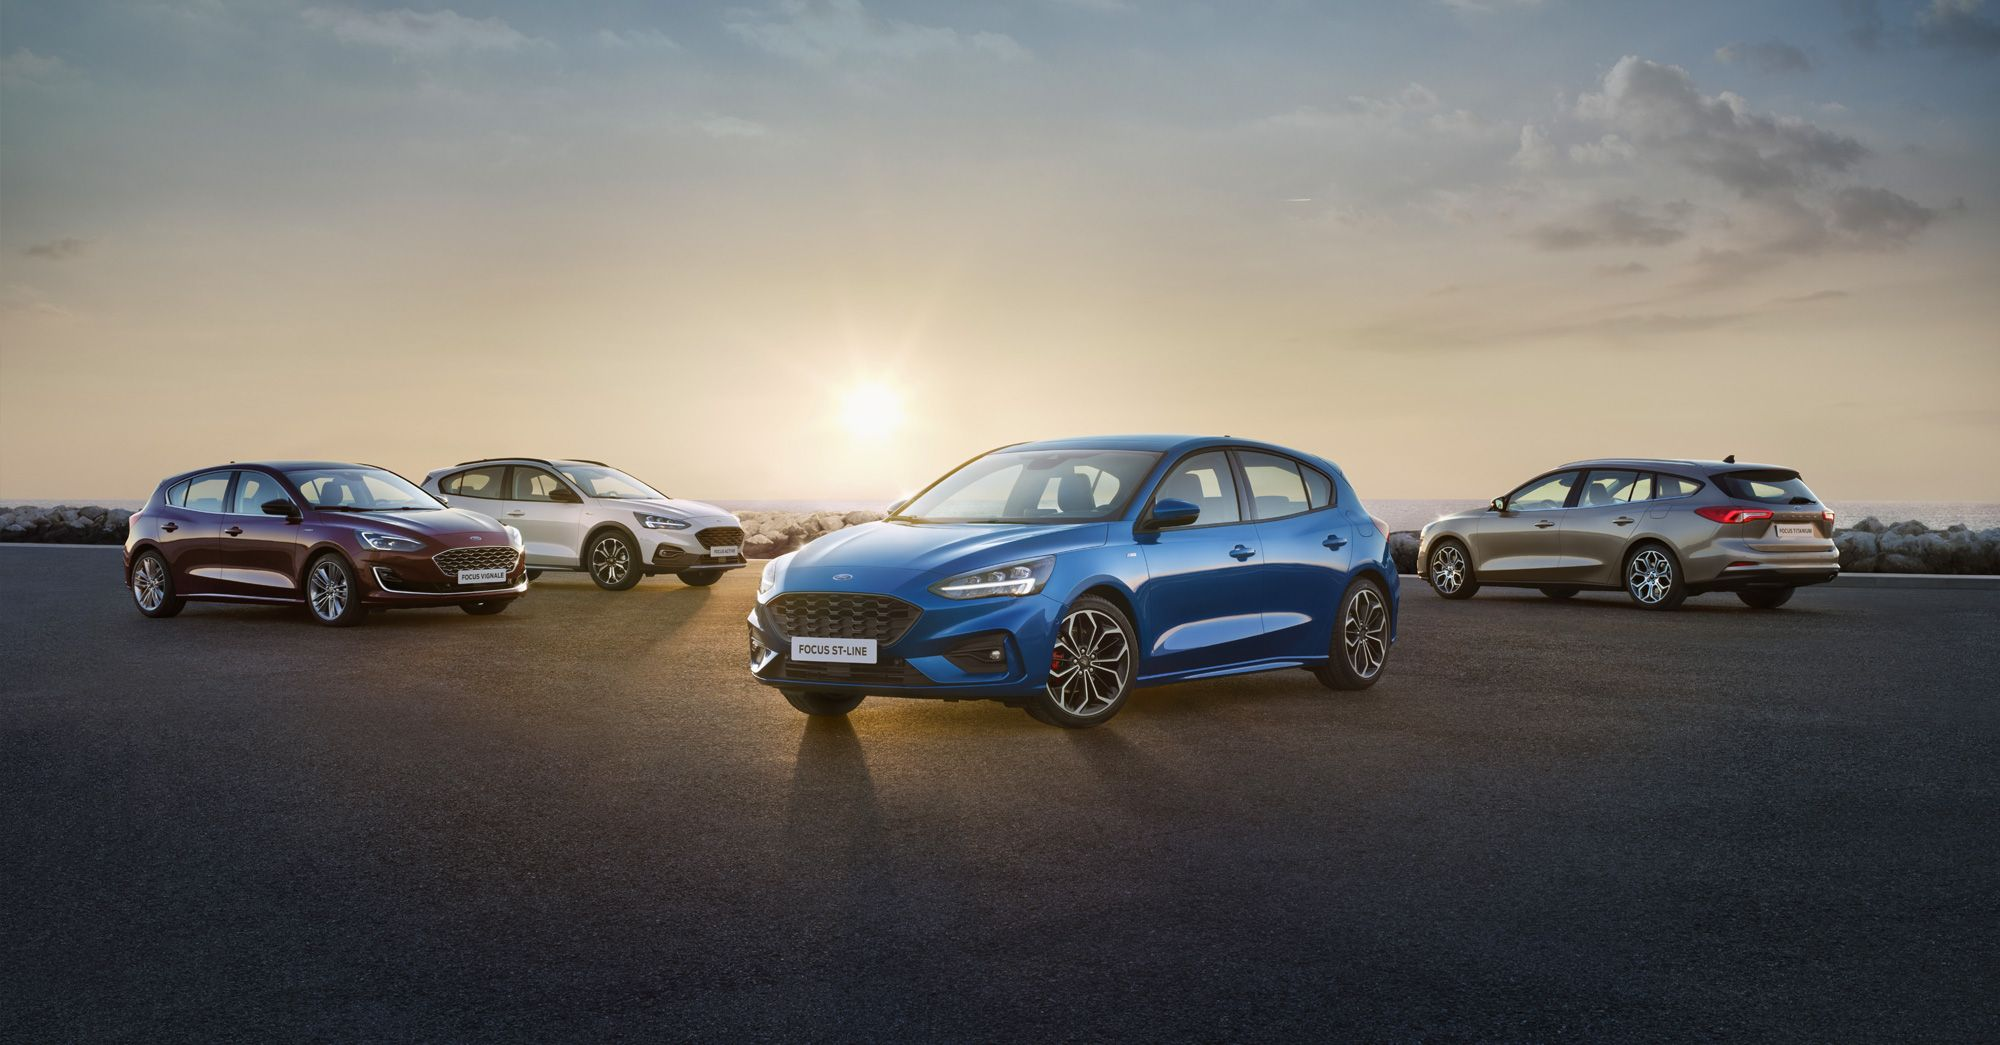 All-New Global Ford Focus is The Most Innovative, Spacious, Connected and Fun-to-Drive Focus Ever